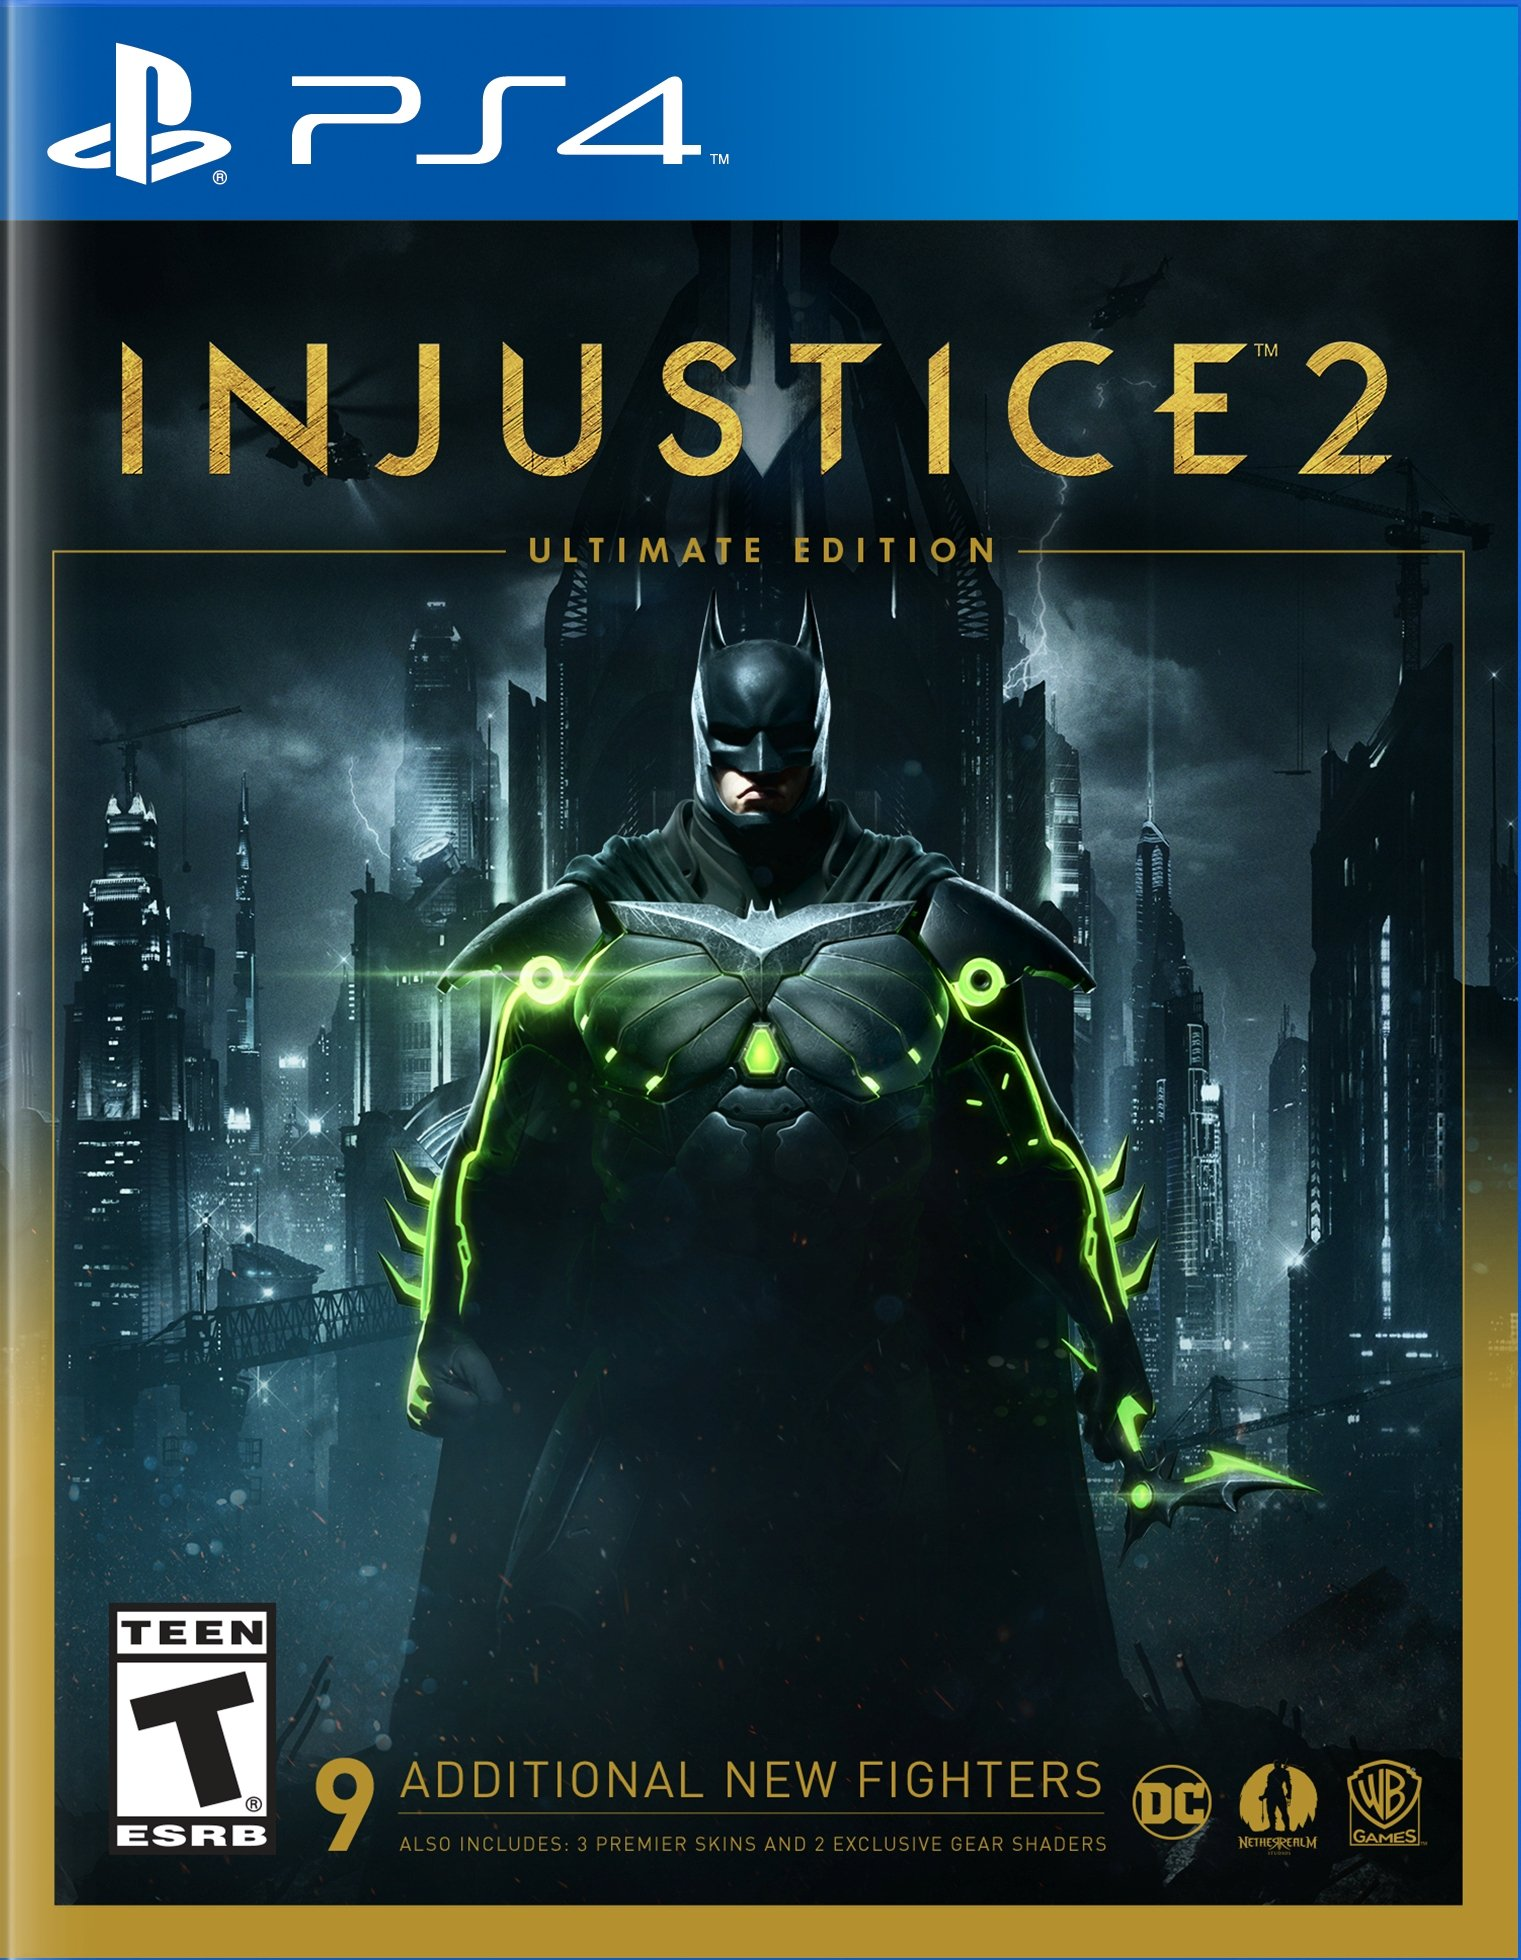 injustice 2 legendary edition price philippines